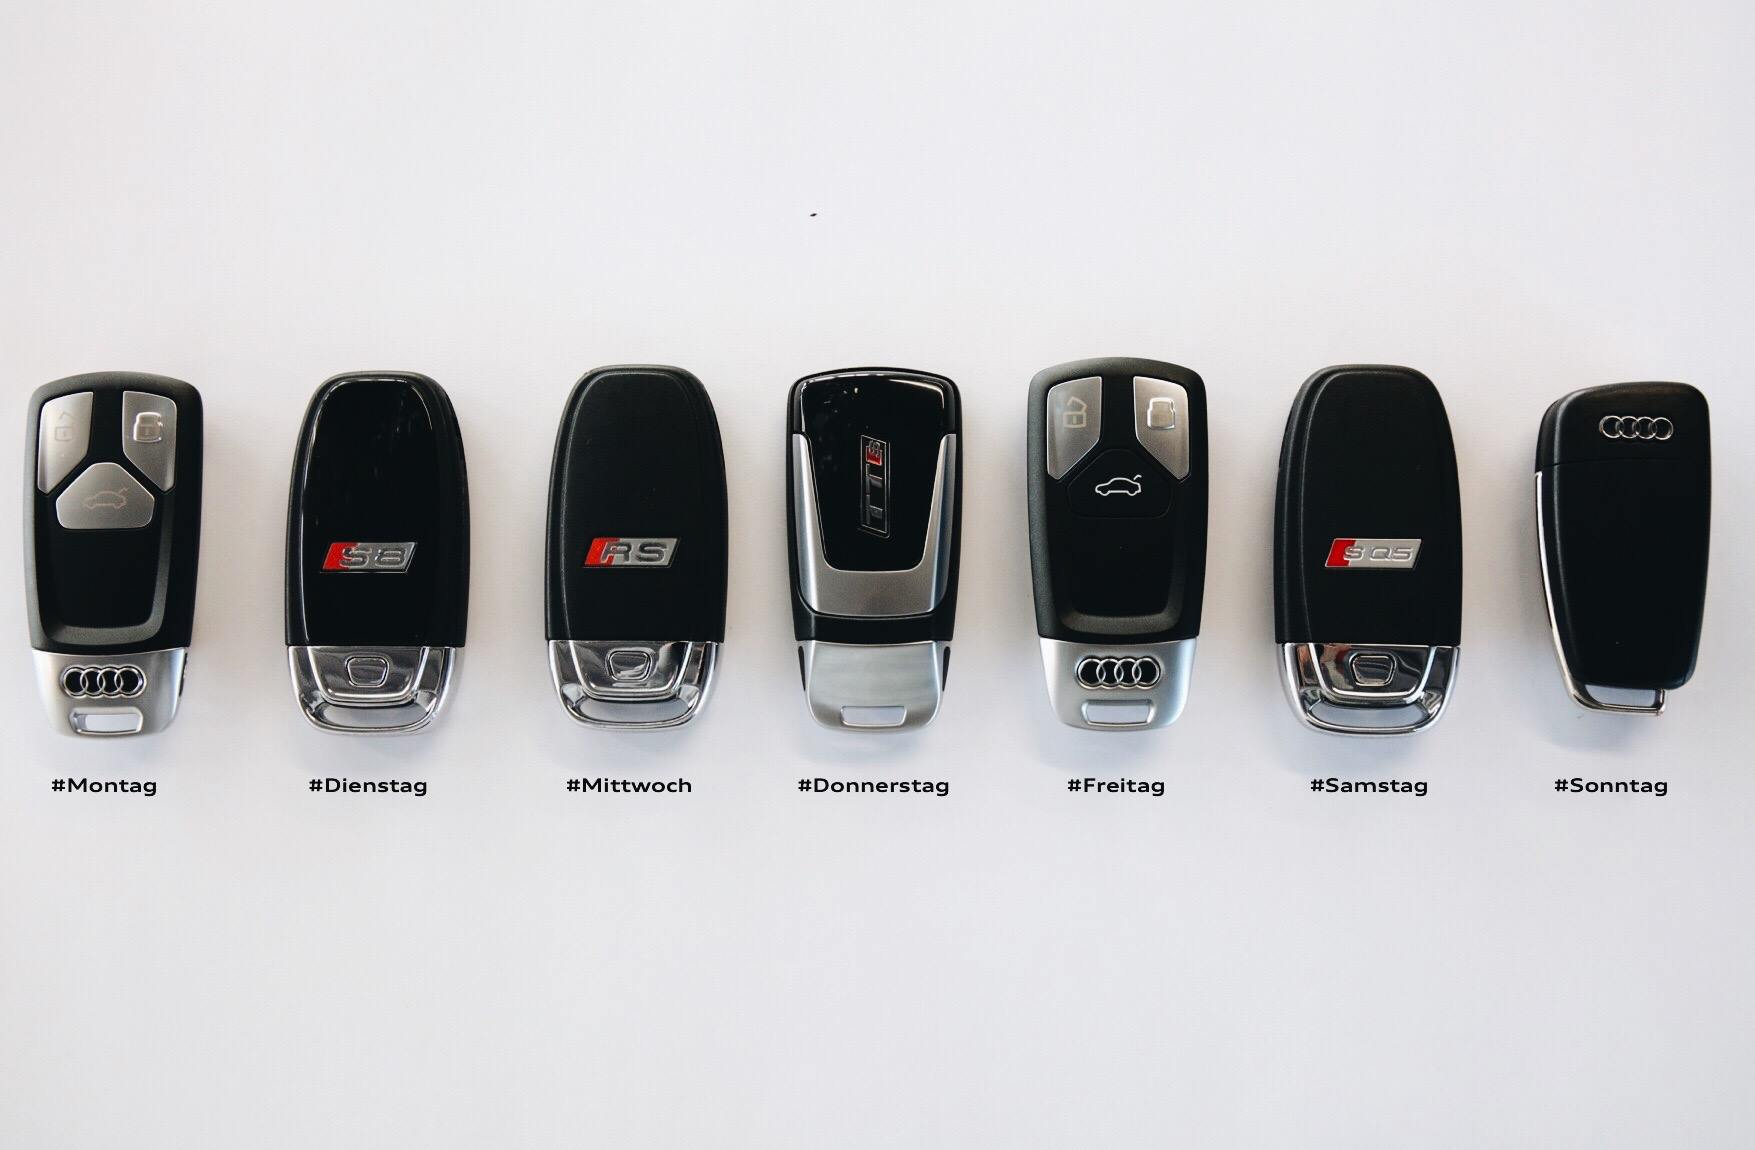 Seven Audi Car Keys, One for Each Day of the Week - autoevolution